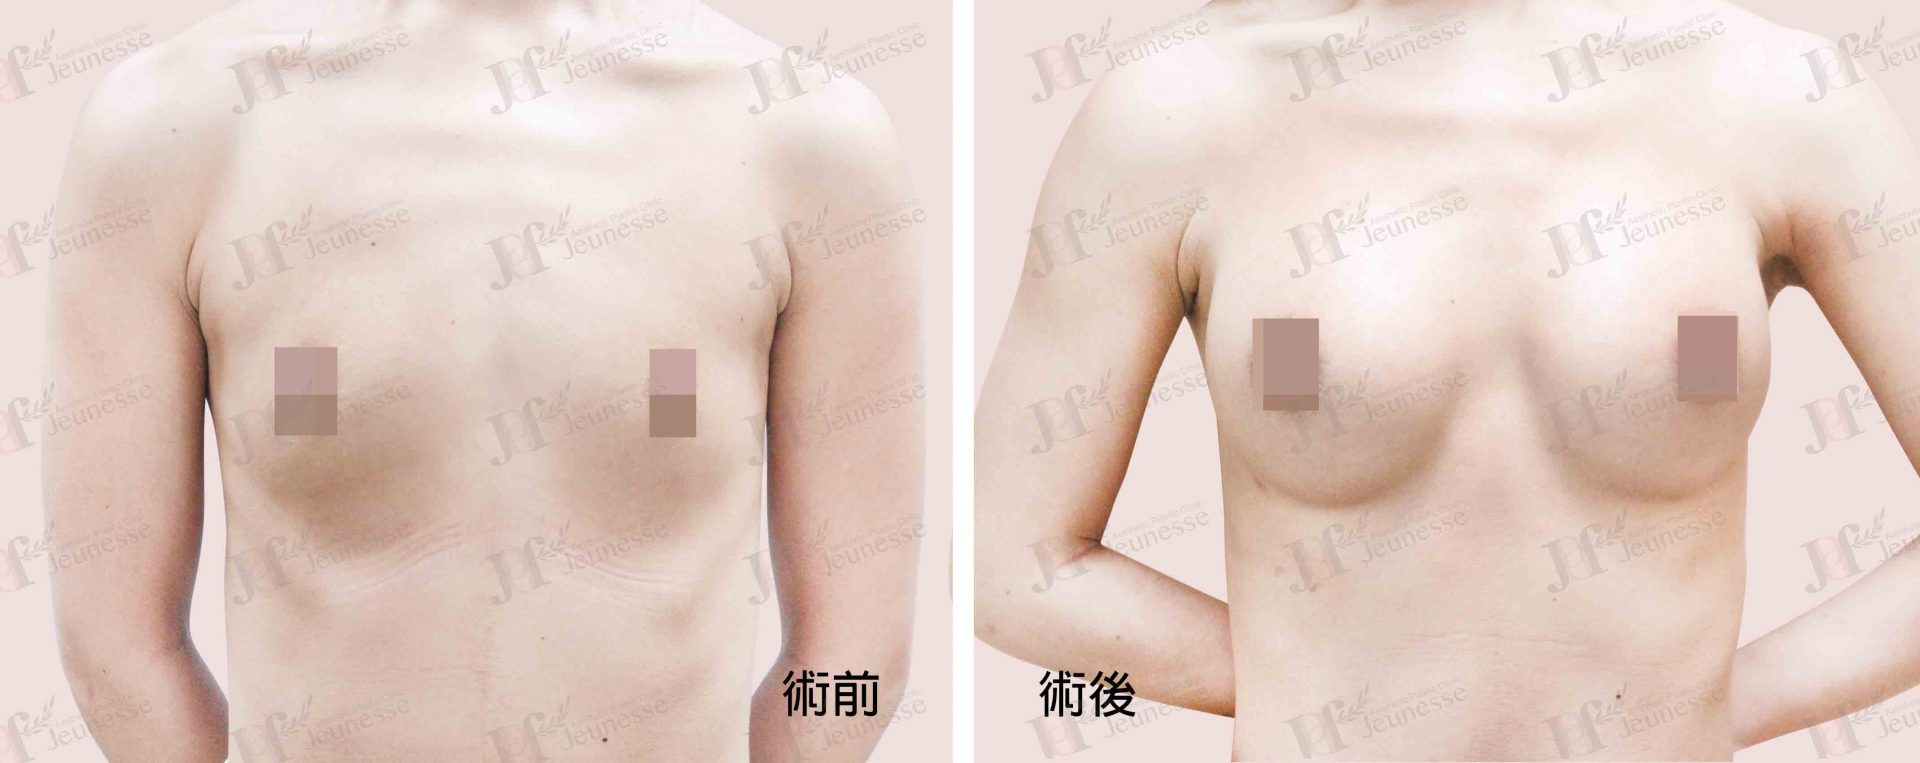 Breast Augmentation- Silicone implants -case3 正面-浮水印